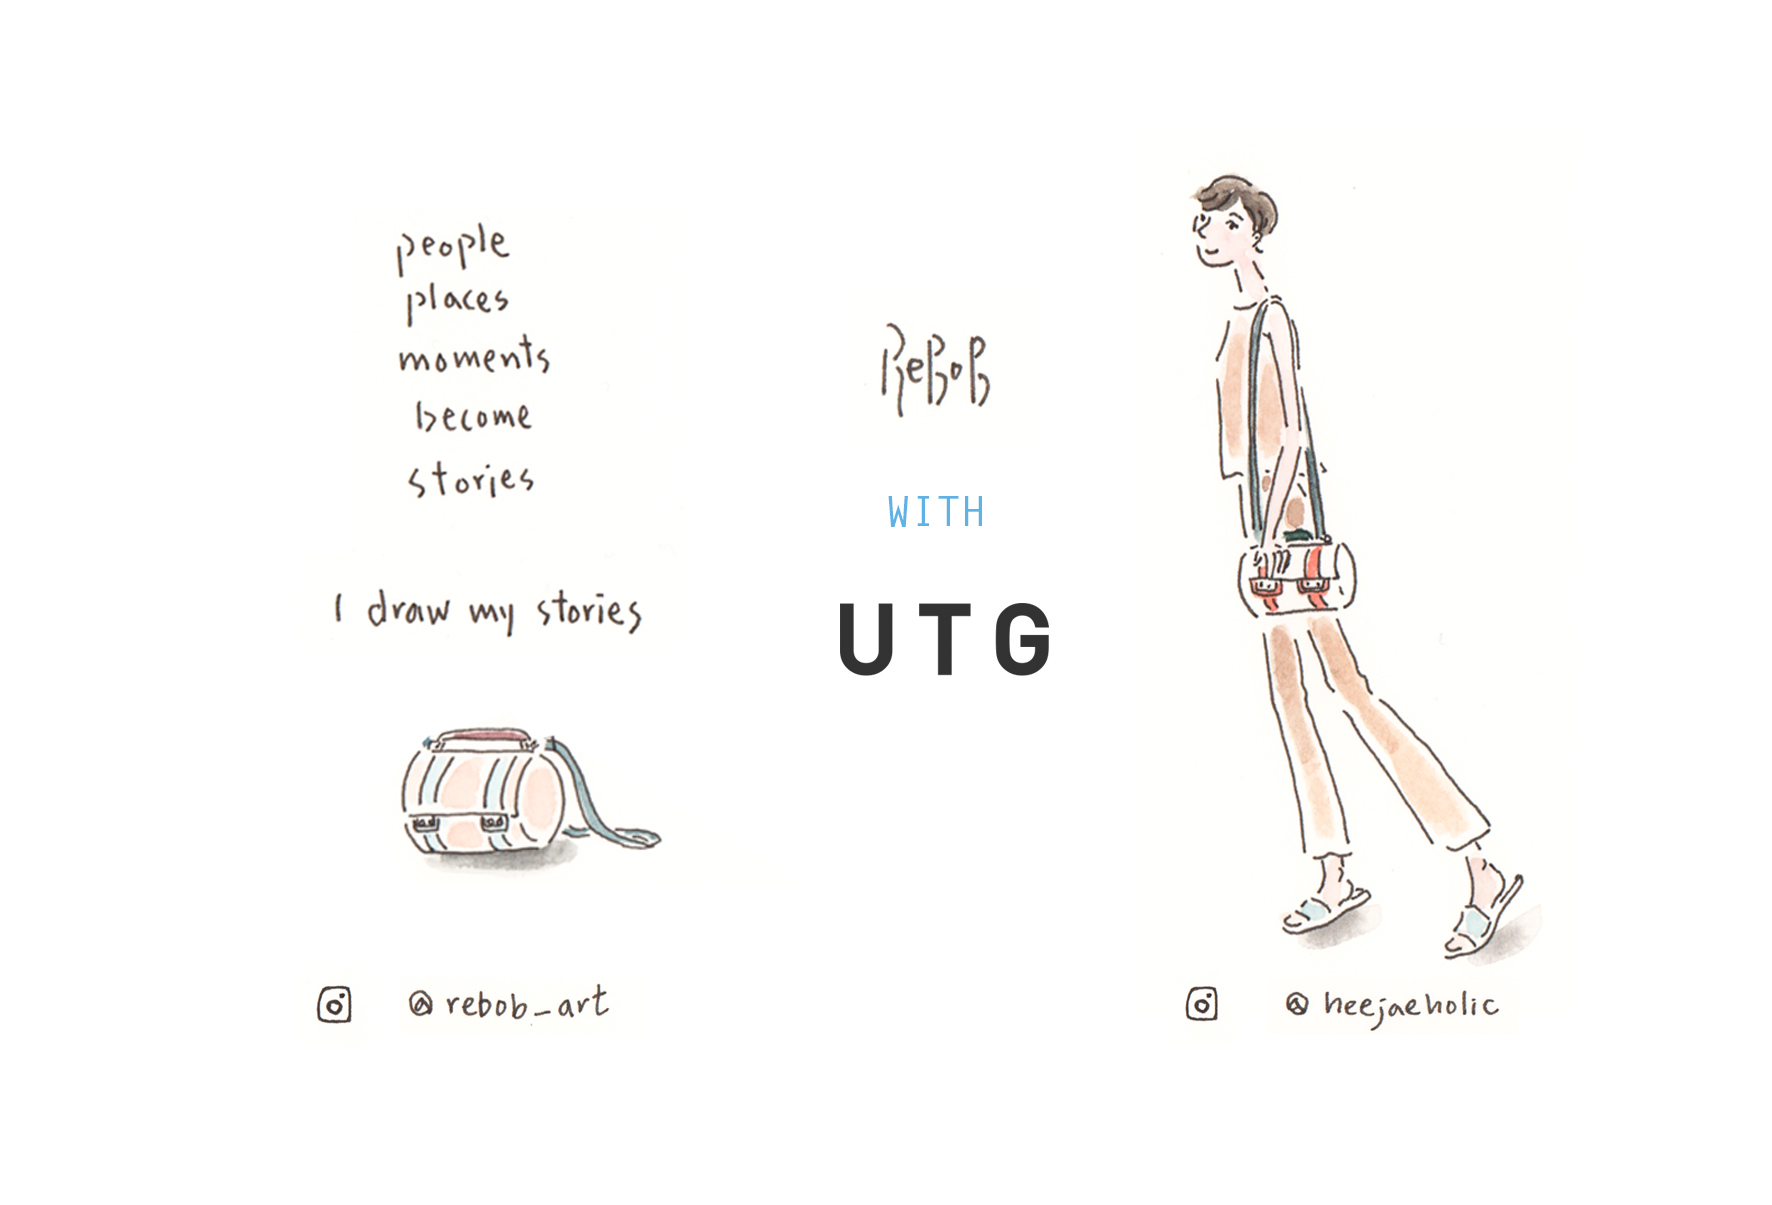 UTG.KR collaboration